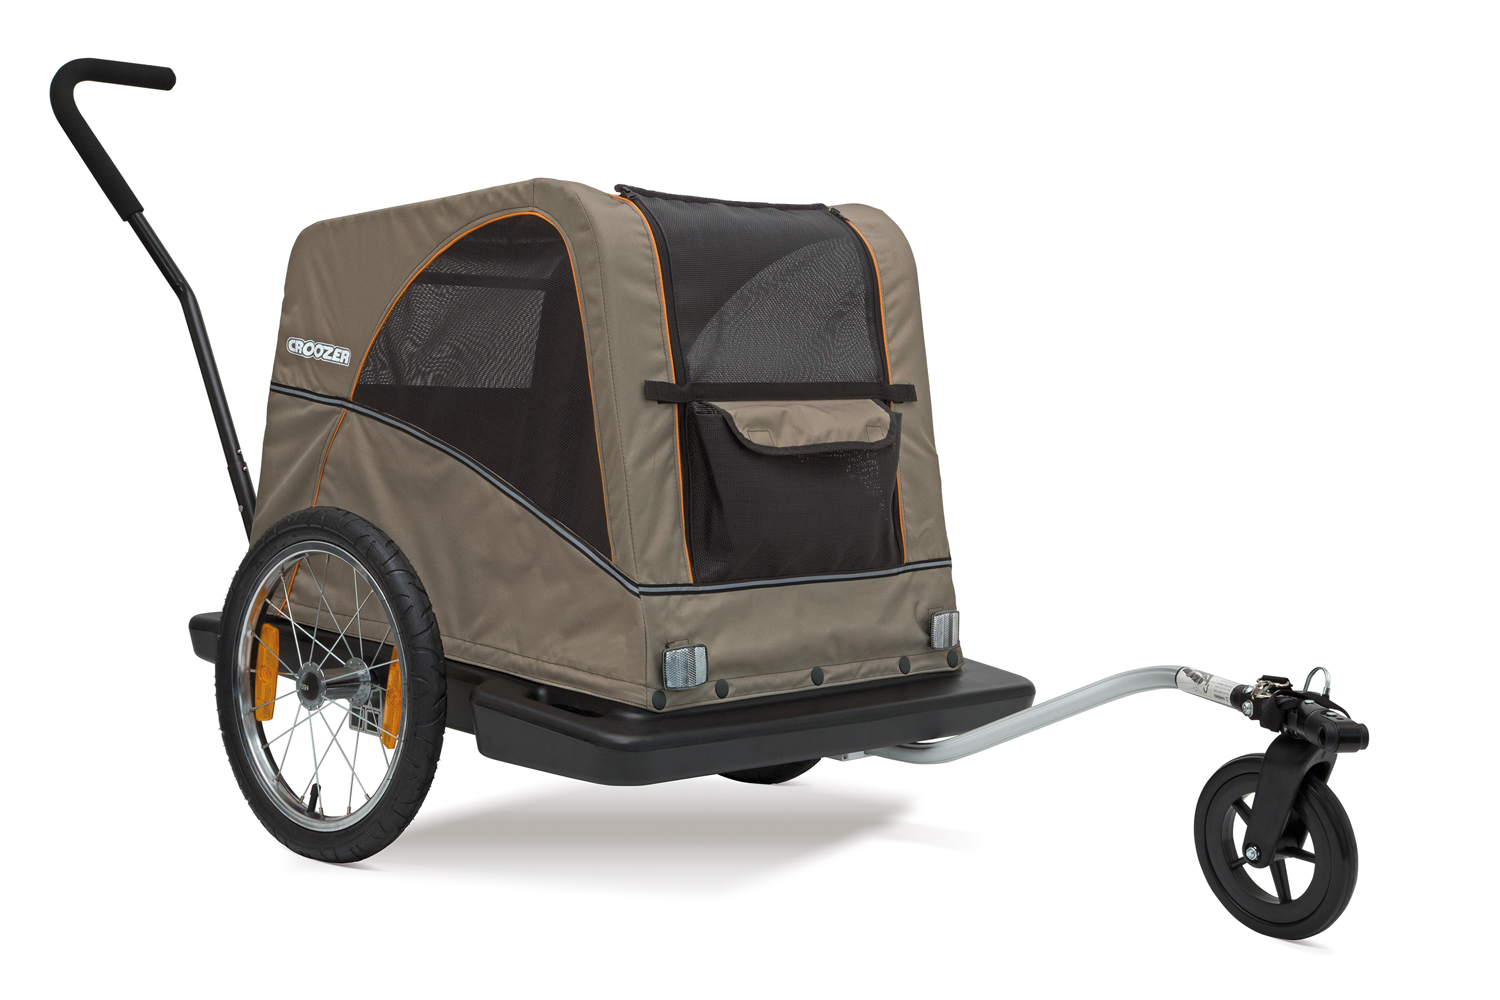 croozer trailers cyclesense tadcaster. Black Bedroom Furniture Sets. Home Design Ideas